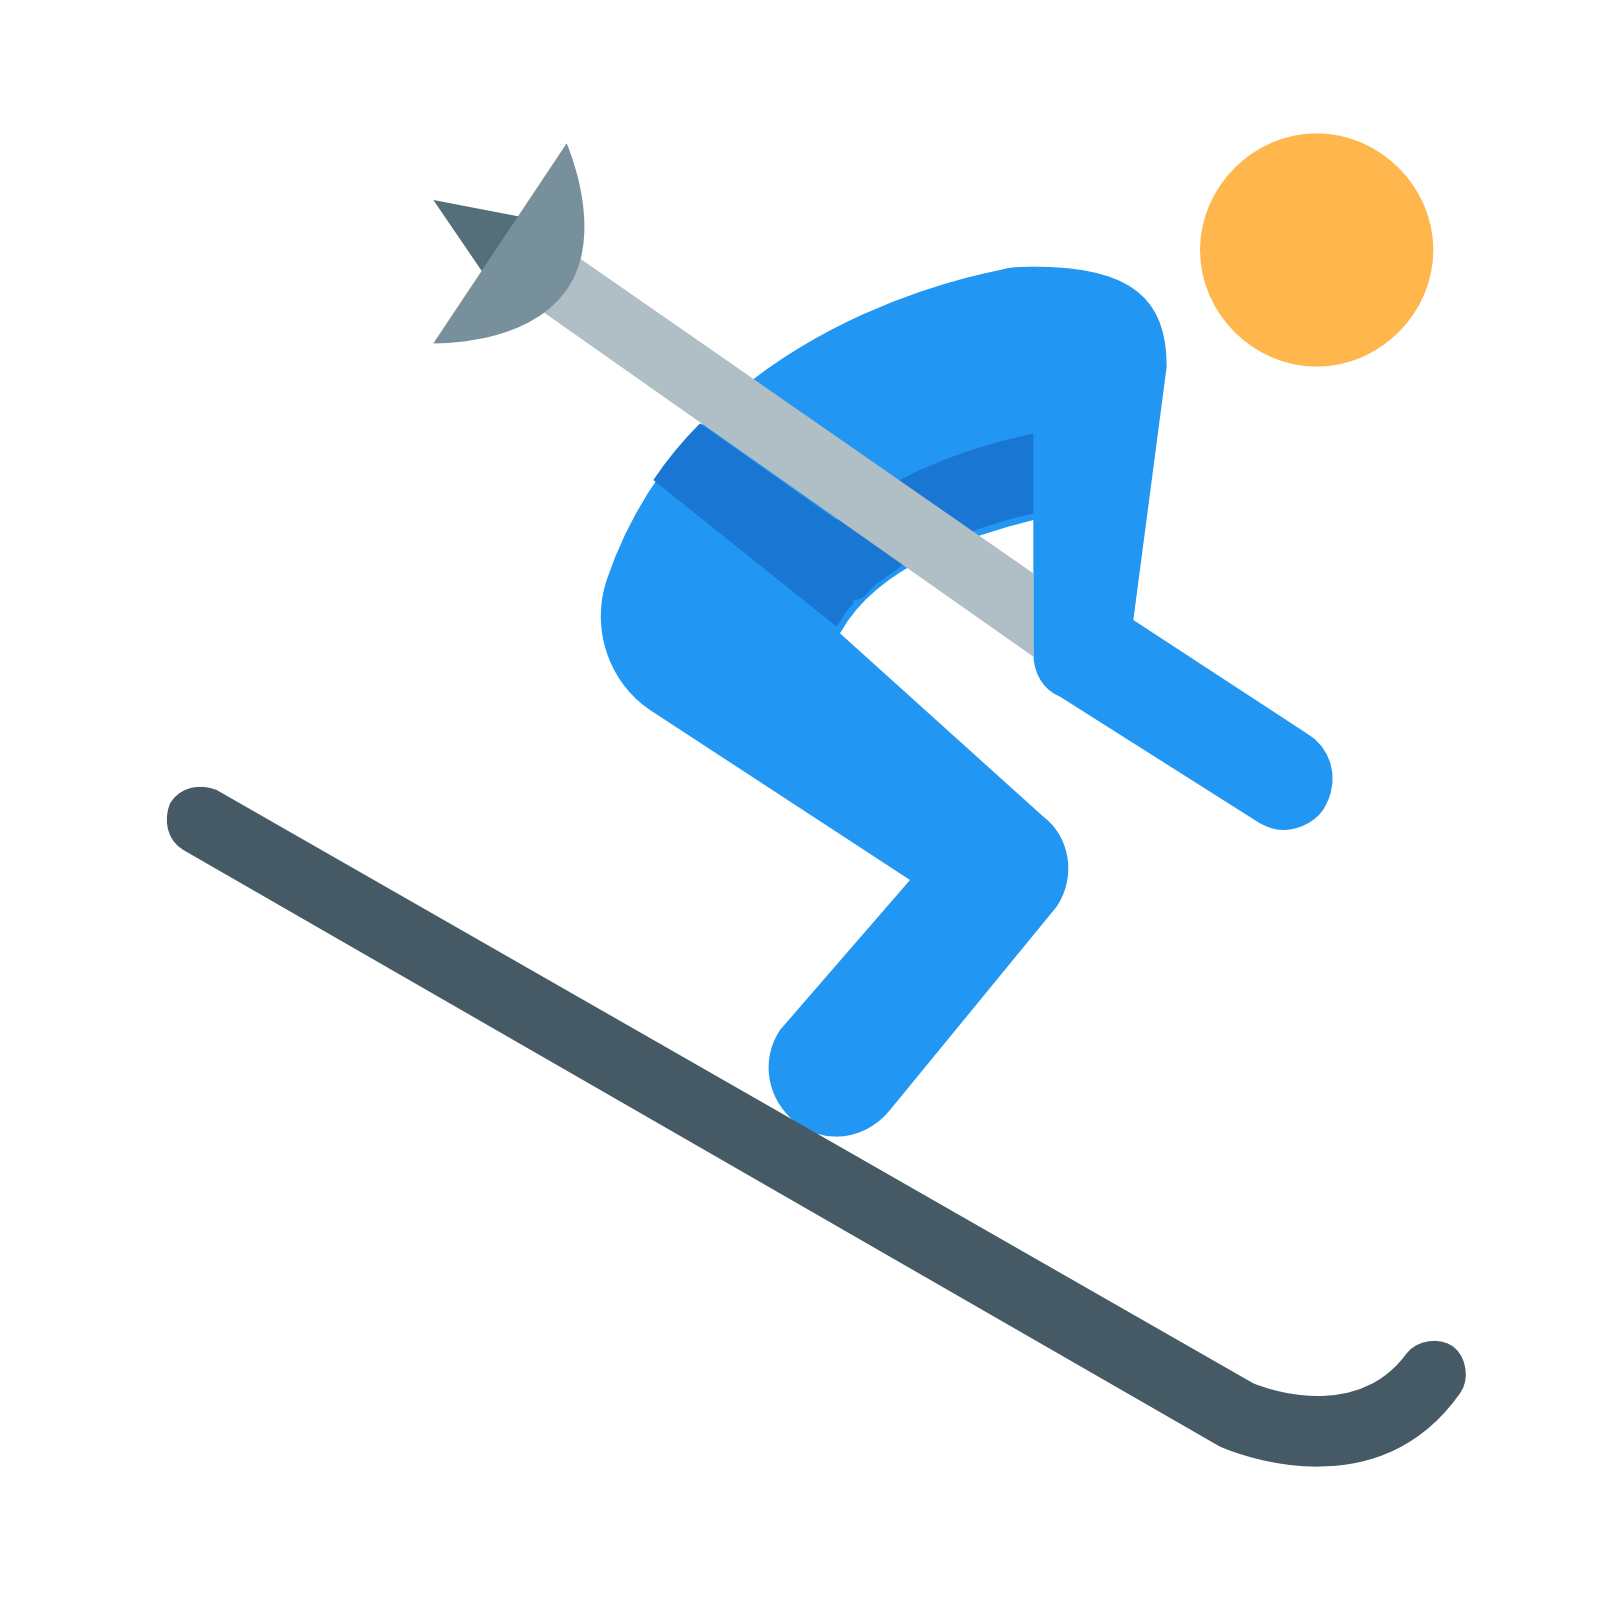 Skiing Transparent Background - Skiing, Transparent background PNG HD thumbnail